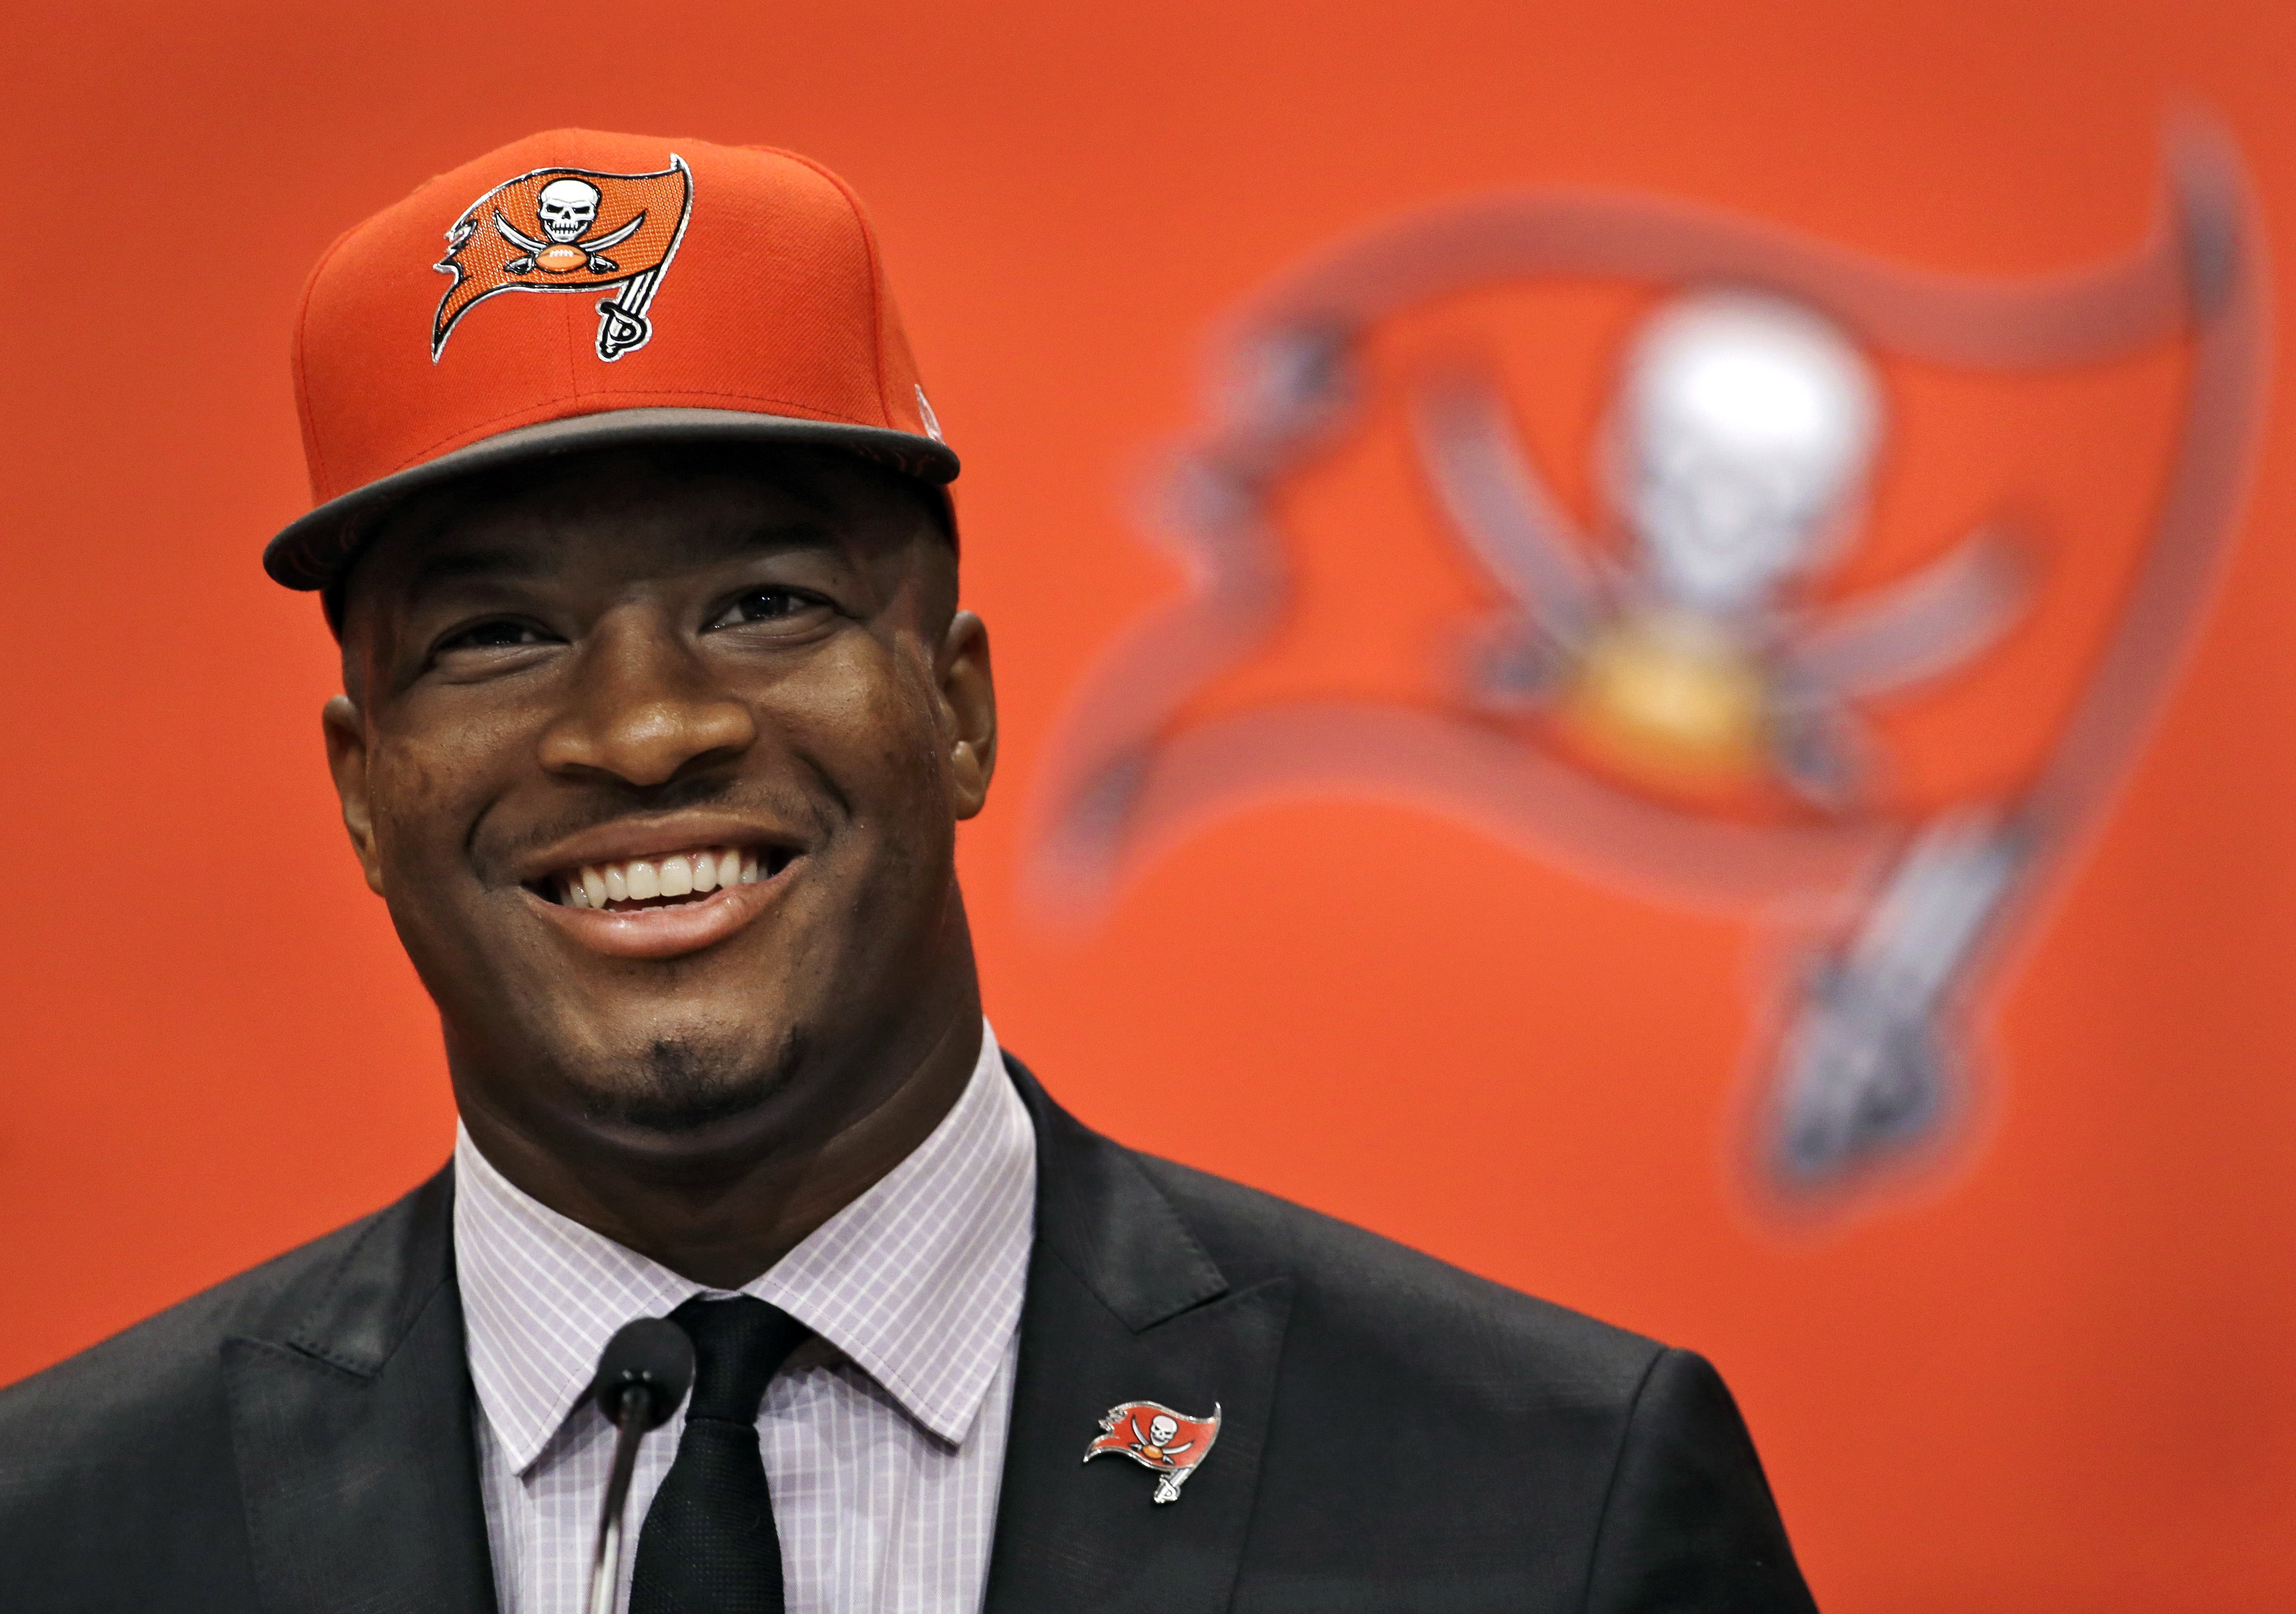 FILE - In this May 1, 2015, file photo, Jameis Winston, selected as the No.1 overall pick in the NFL draft by the Tampa Bay Buccaneers, smiles during a news conference in Tampa, Fla. Winston and Marcus Mariota became the sixth pair of quarterbacks drafted